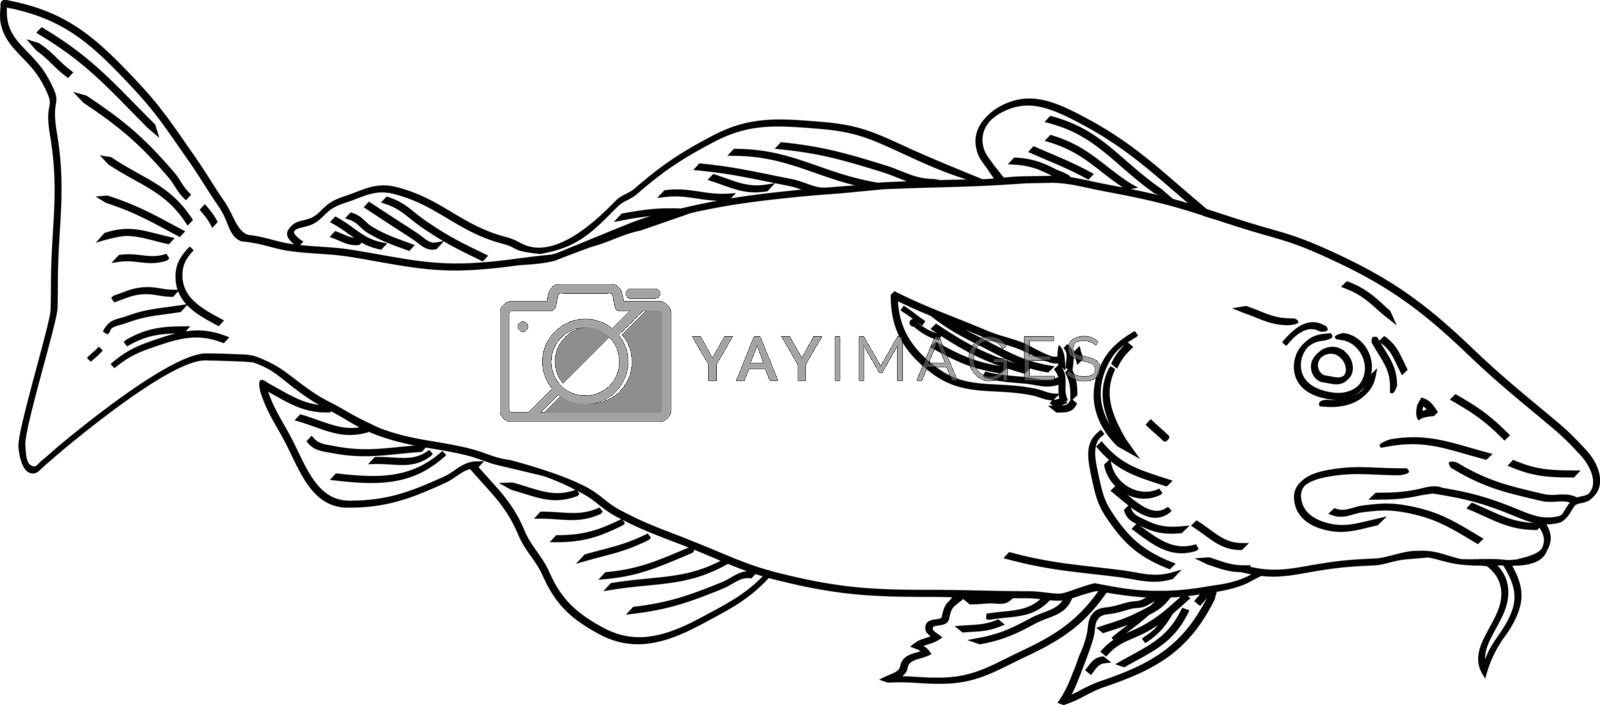 Line Art style illustration of an Atlantic cod Gadus morhua, a benthopelagic fish of the family Gadidae commercially known as cod or codling viewed from side on isolated background in black and white.